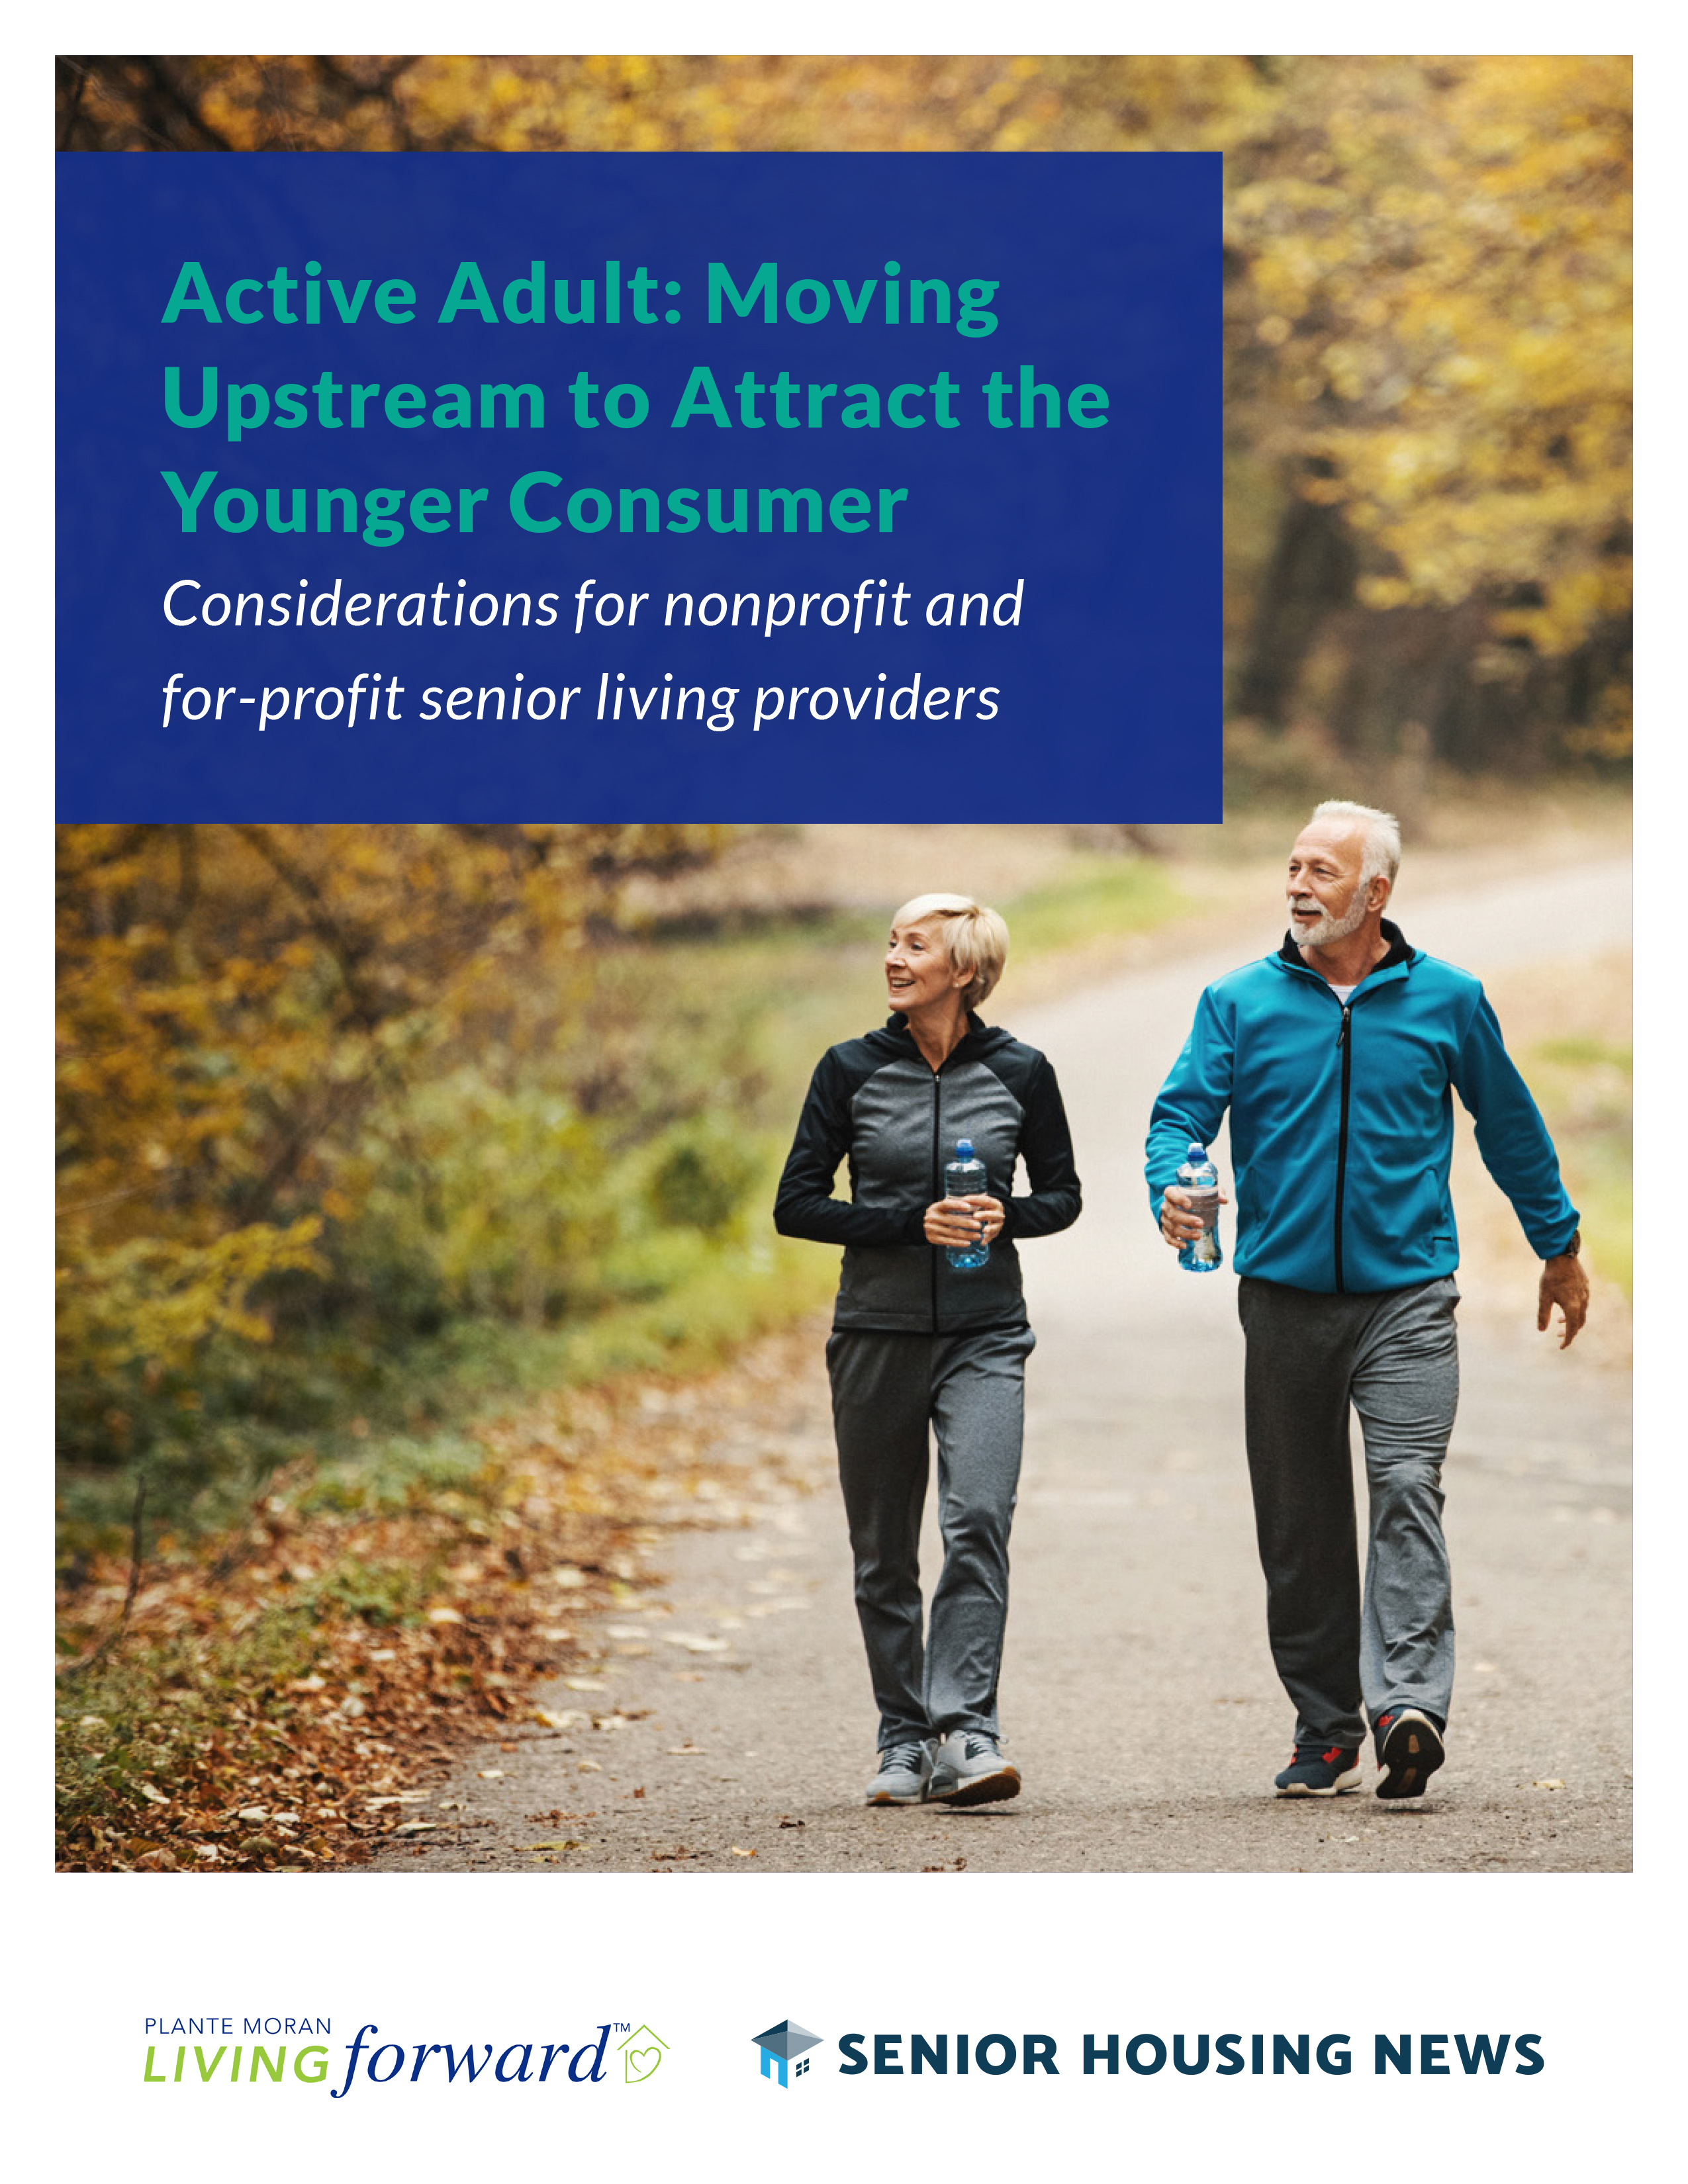 Active Adult: Moving Upstream to Attract the Younger Consumer